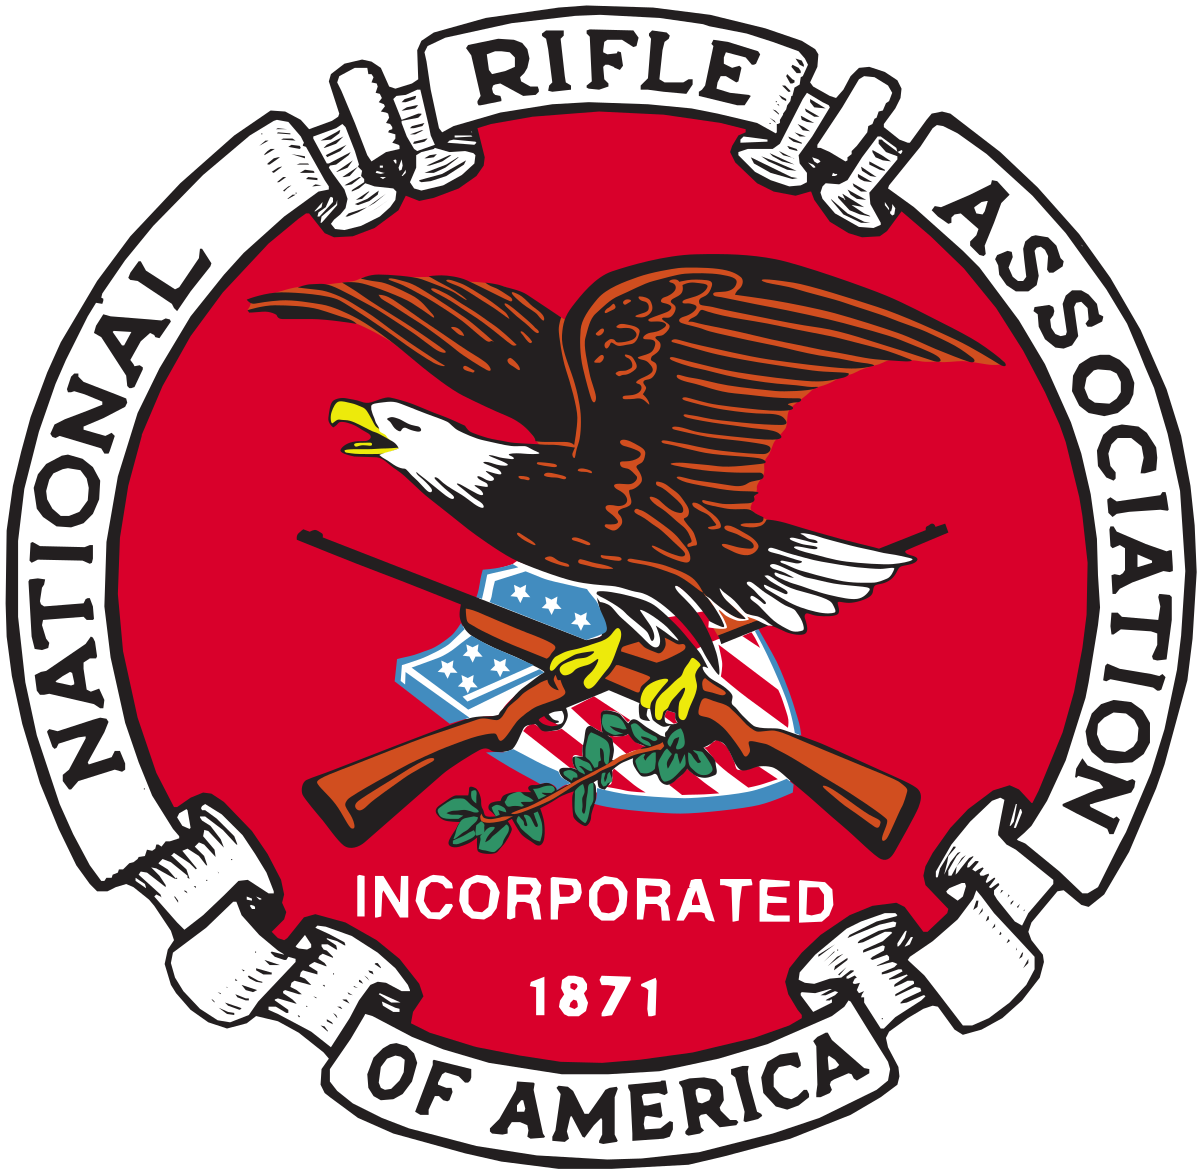 National_Rifle_Association_official_logo.svg.png